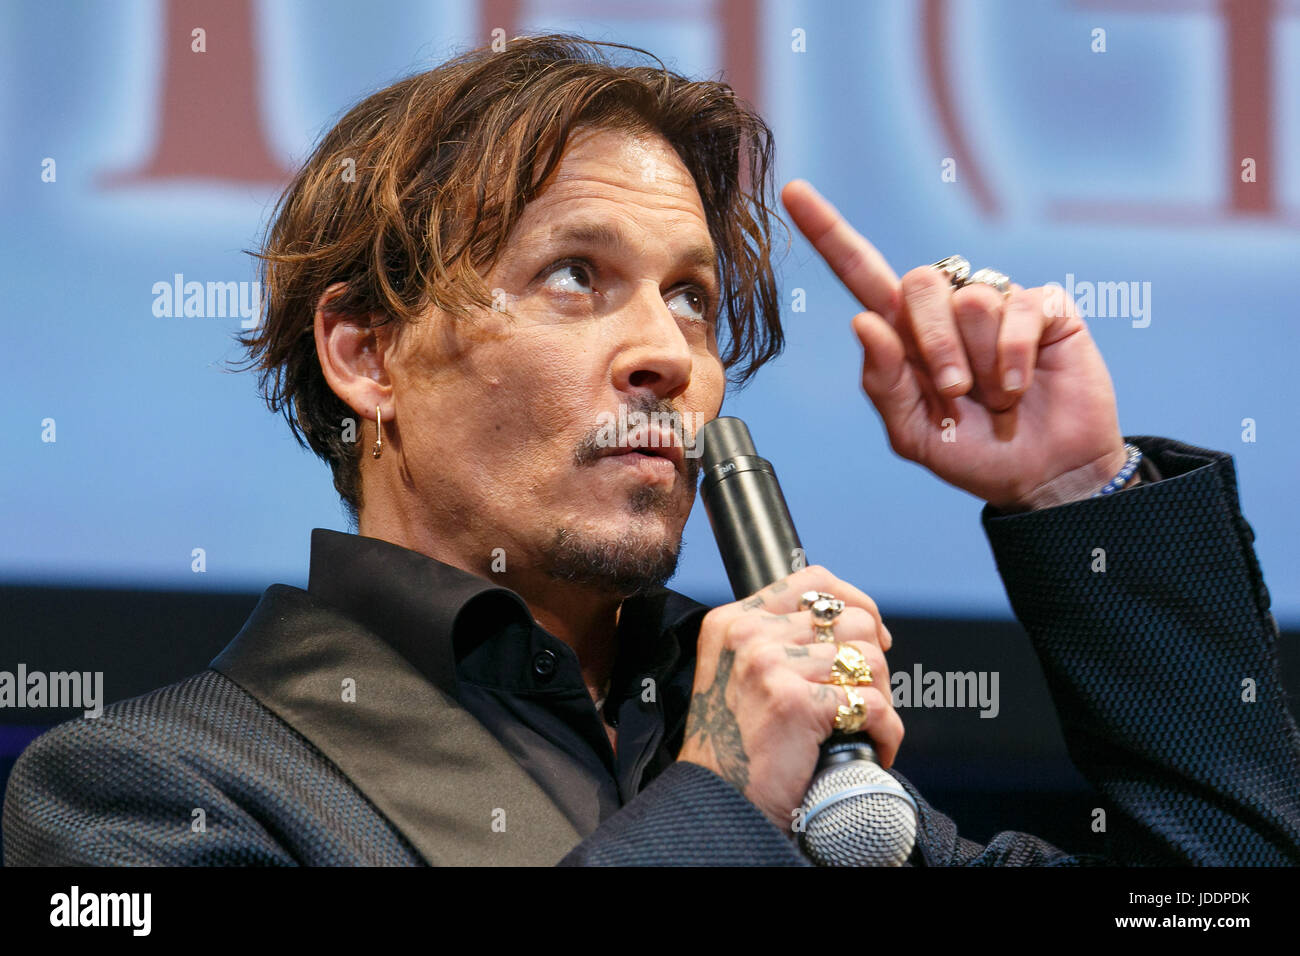 Tokyo, Japan. 20th June, 2017. American actor Johnny Depp speaks during the premiere for the film Pirates of the - Stock Image